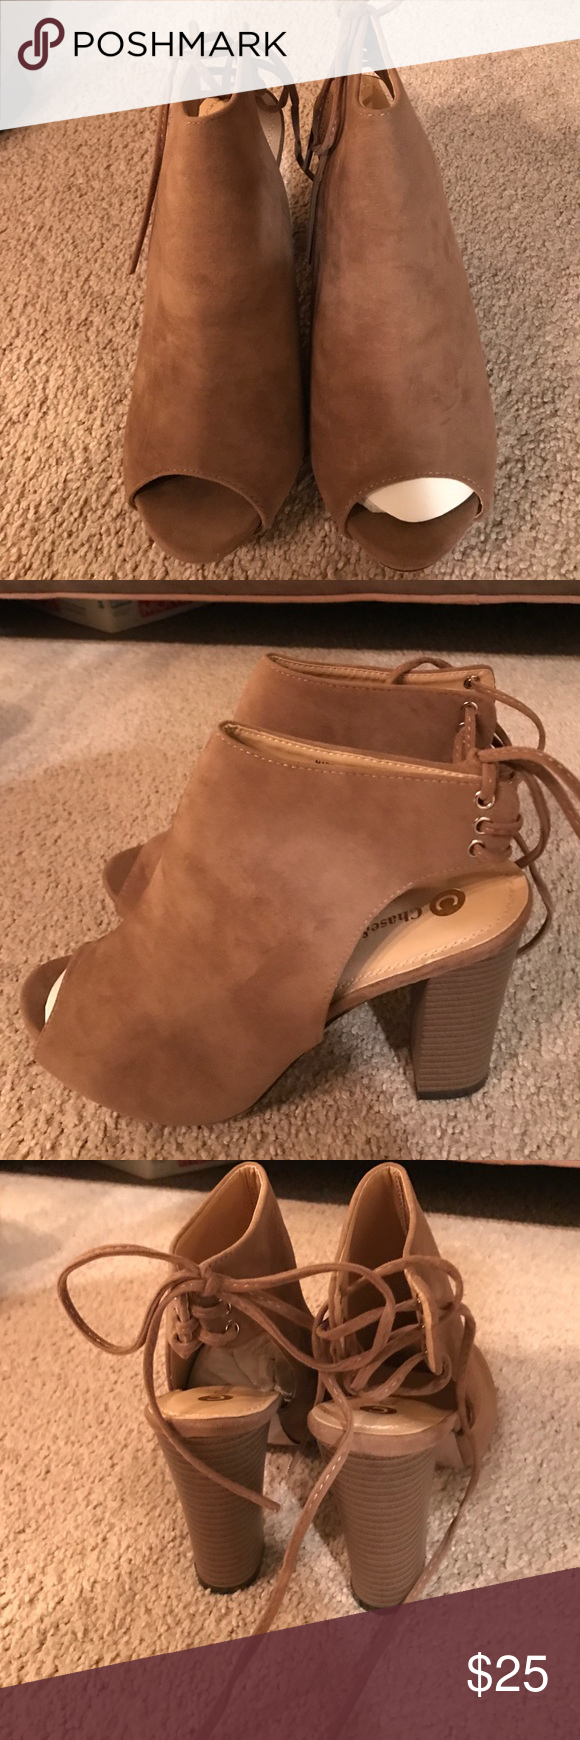 Tan, peep toe booties Tan, peep toe booties Shoes Ankle Boots & Booties